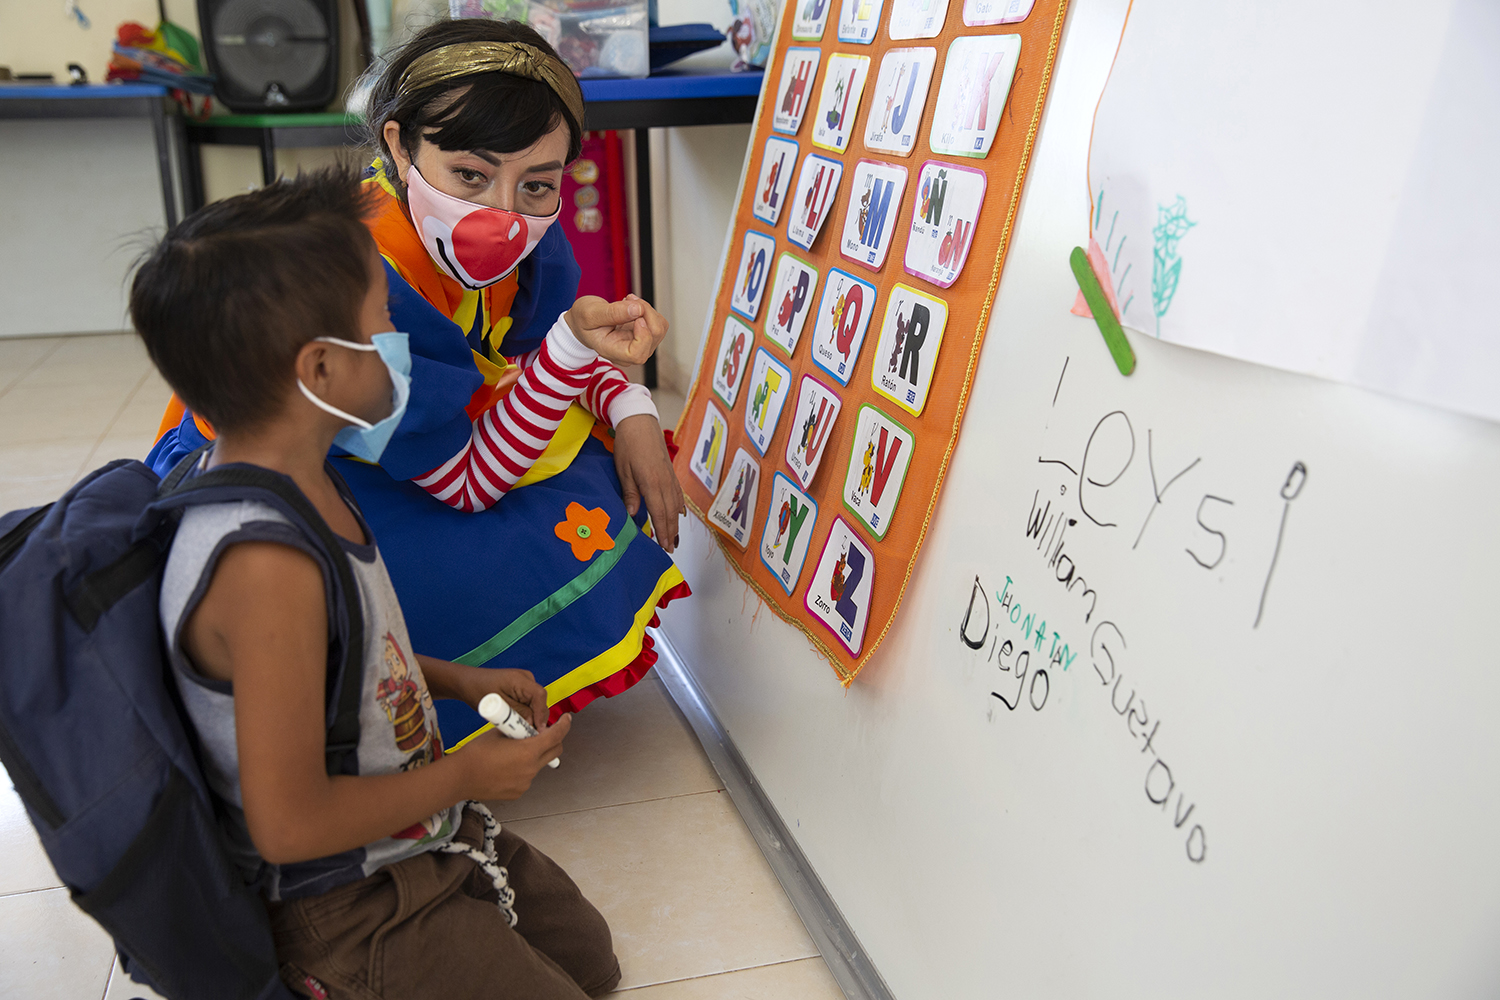 Mary Carmen Che Chi teaches a small class of 6- to 8-year-olds at the Ignacio Ramírez Calzada primary school in Celtún on May 3.